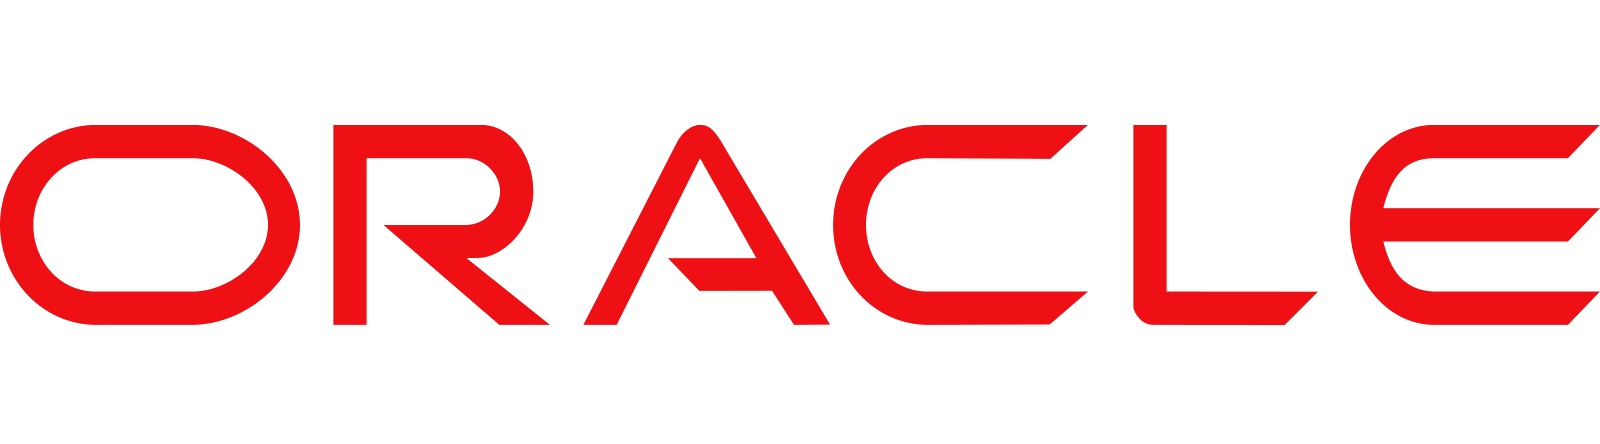 oracle-logo_0.jpg